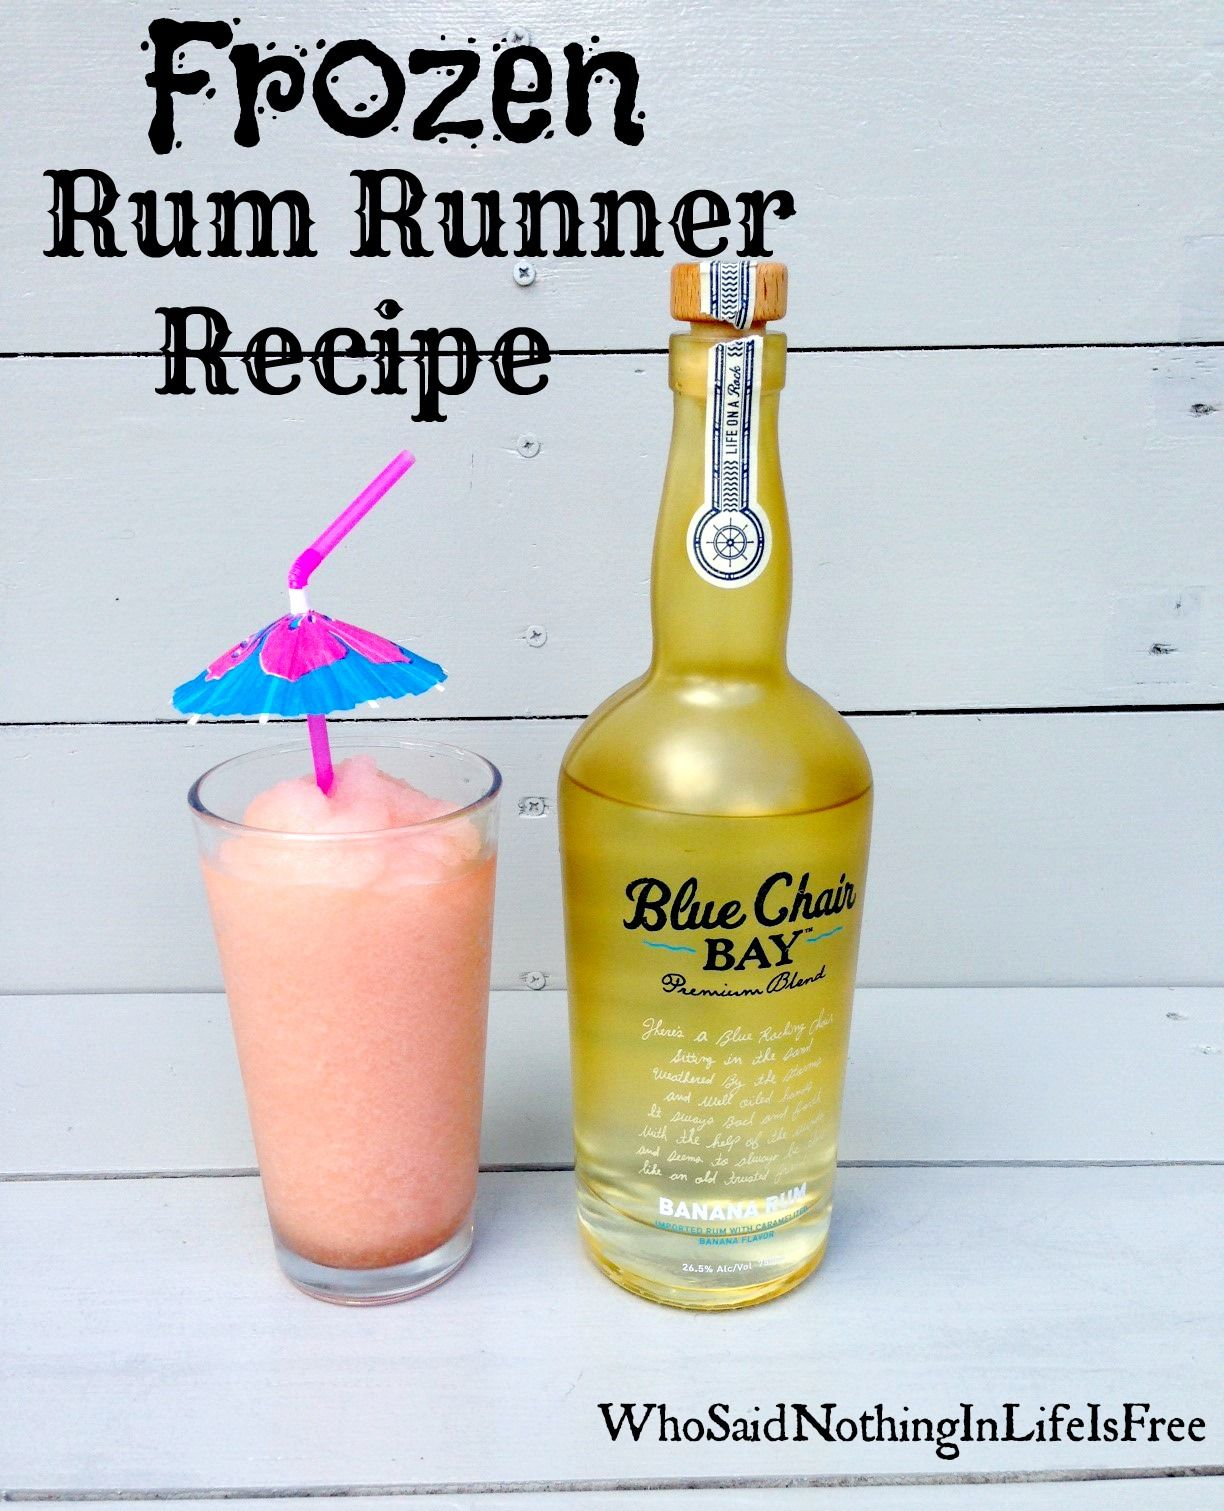 Frozen Rum Runner Cocktail made with Blue Chair Bay Banana